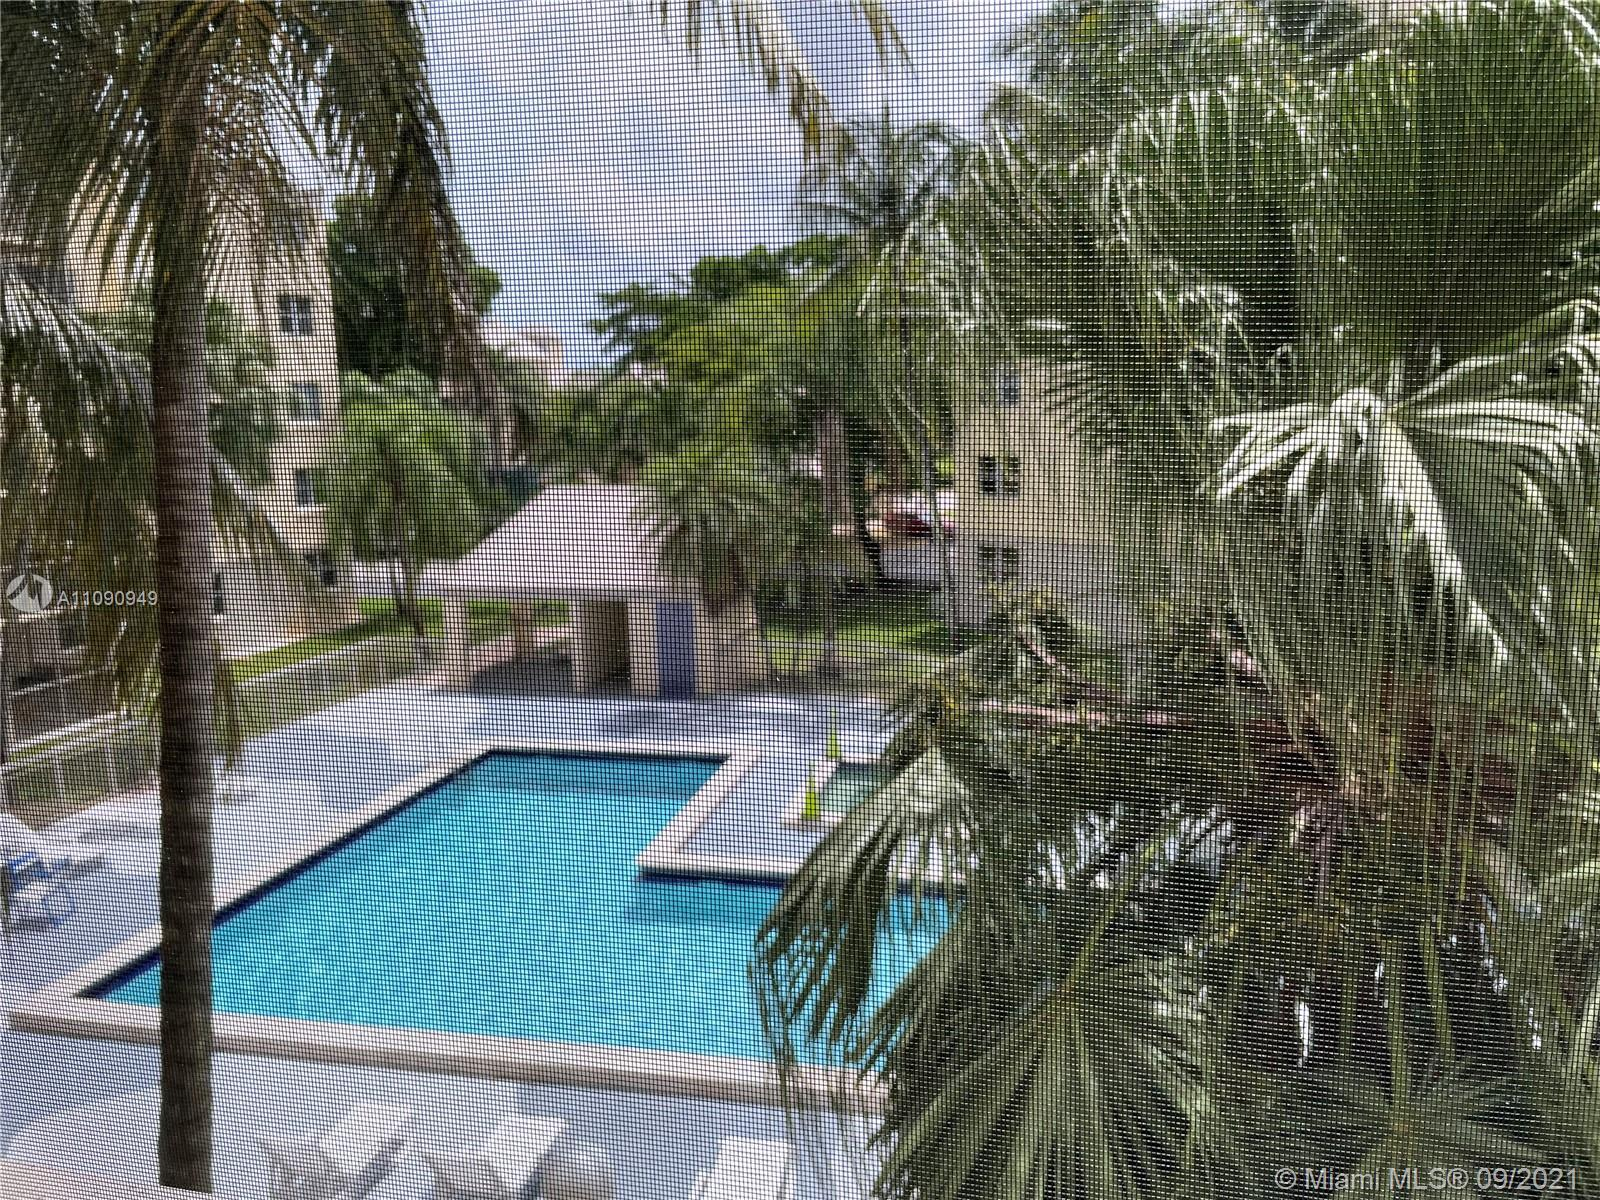 Undisclosed For Sale A11090949, FL